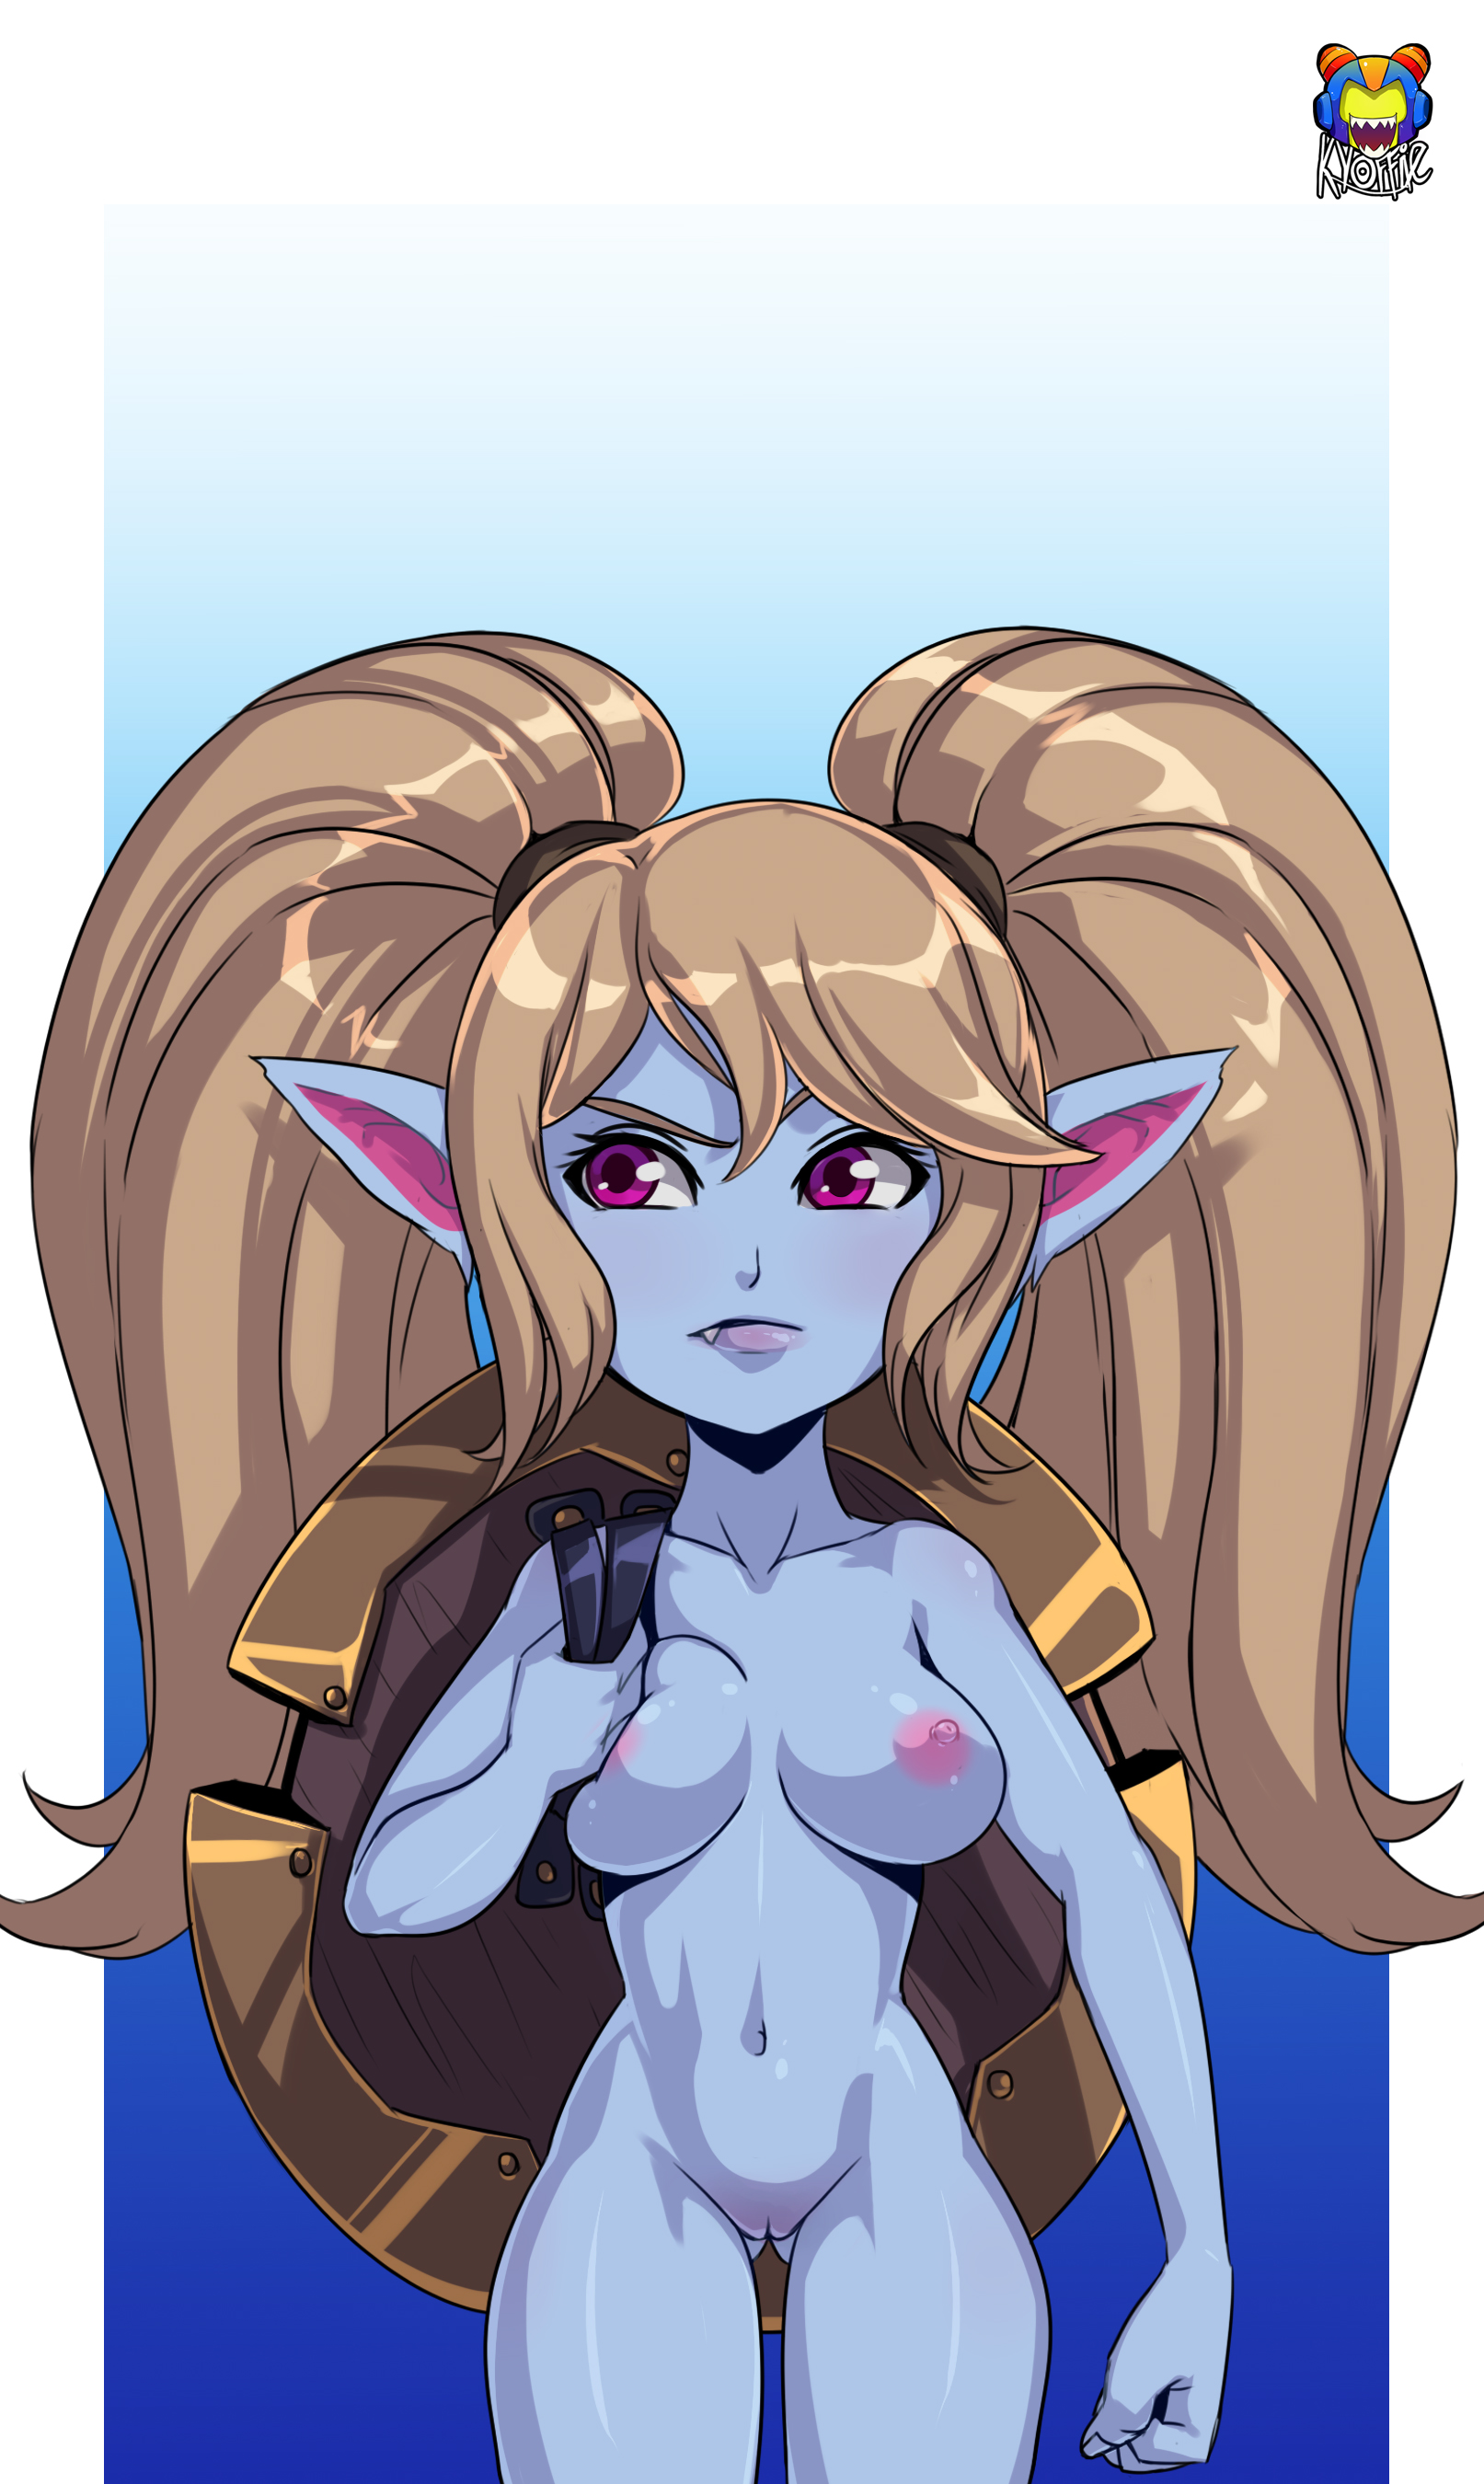 2588329 - Kyoffie League_of_Legends Poppy yordle